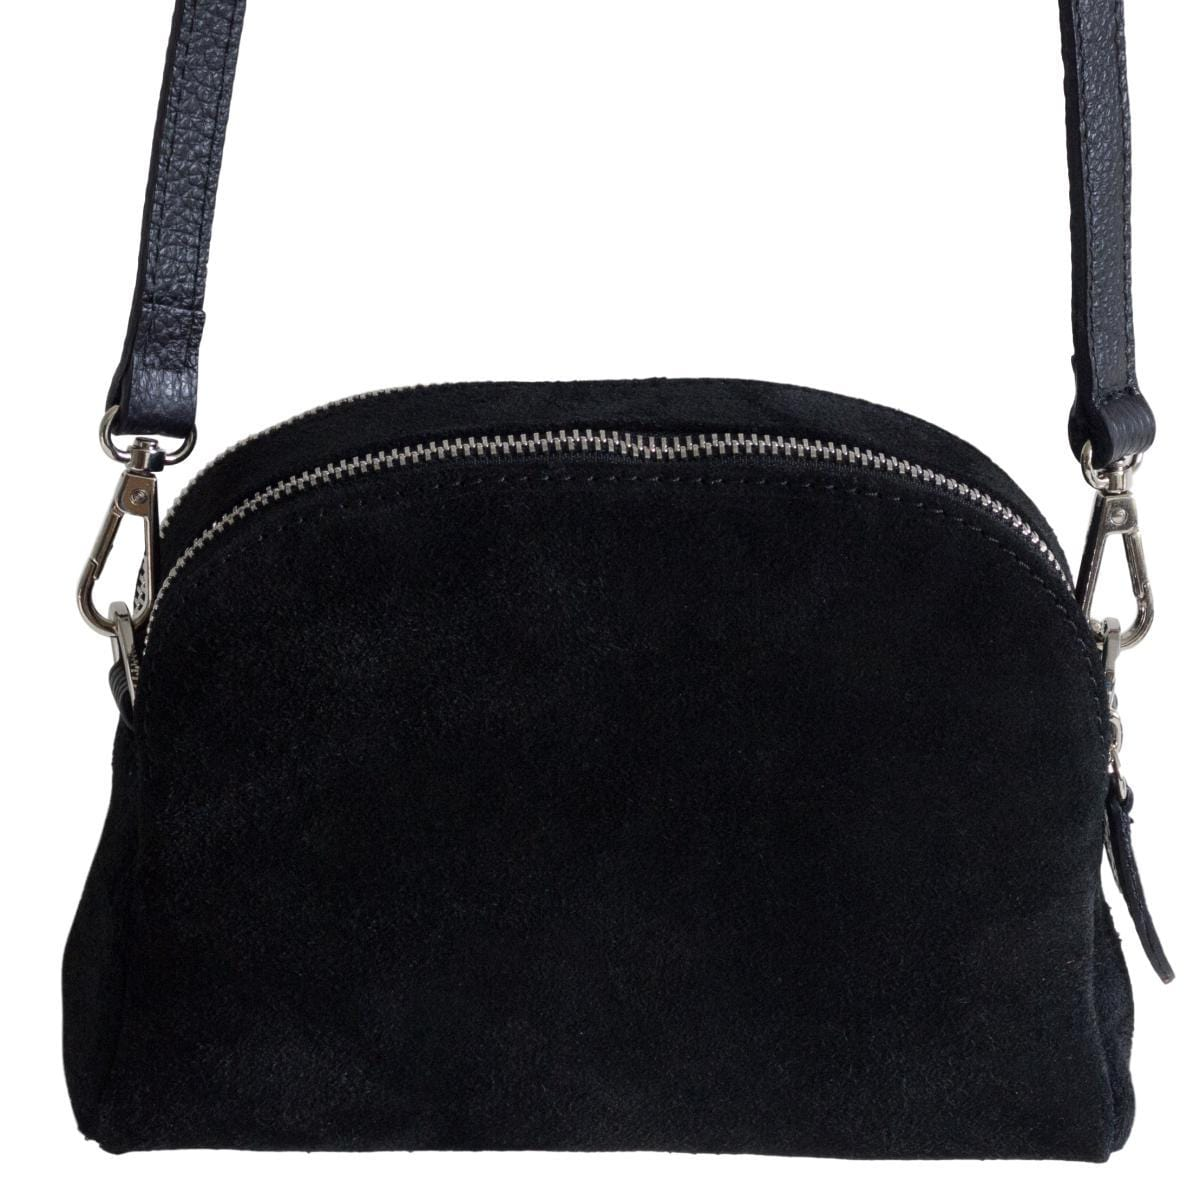 Viola cross-body clutch bag - black suede leather